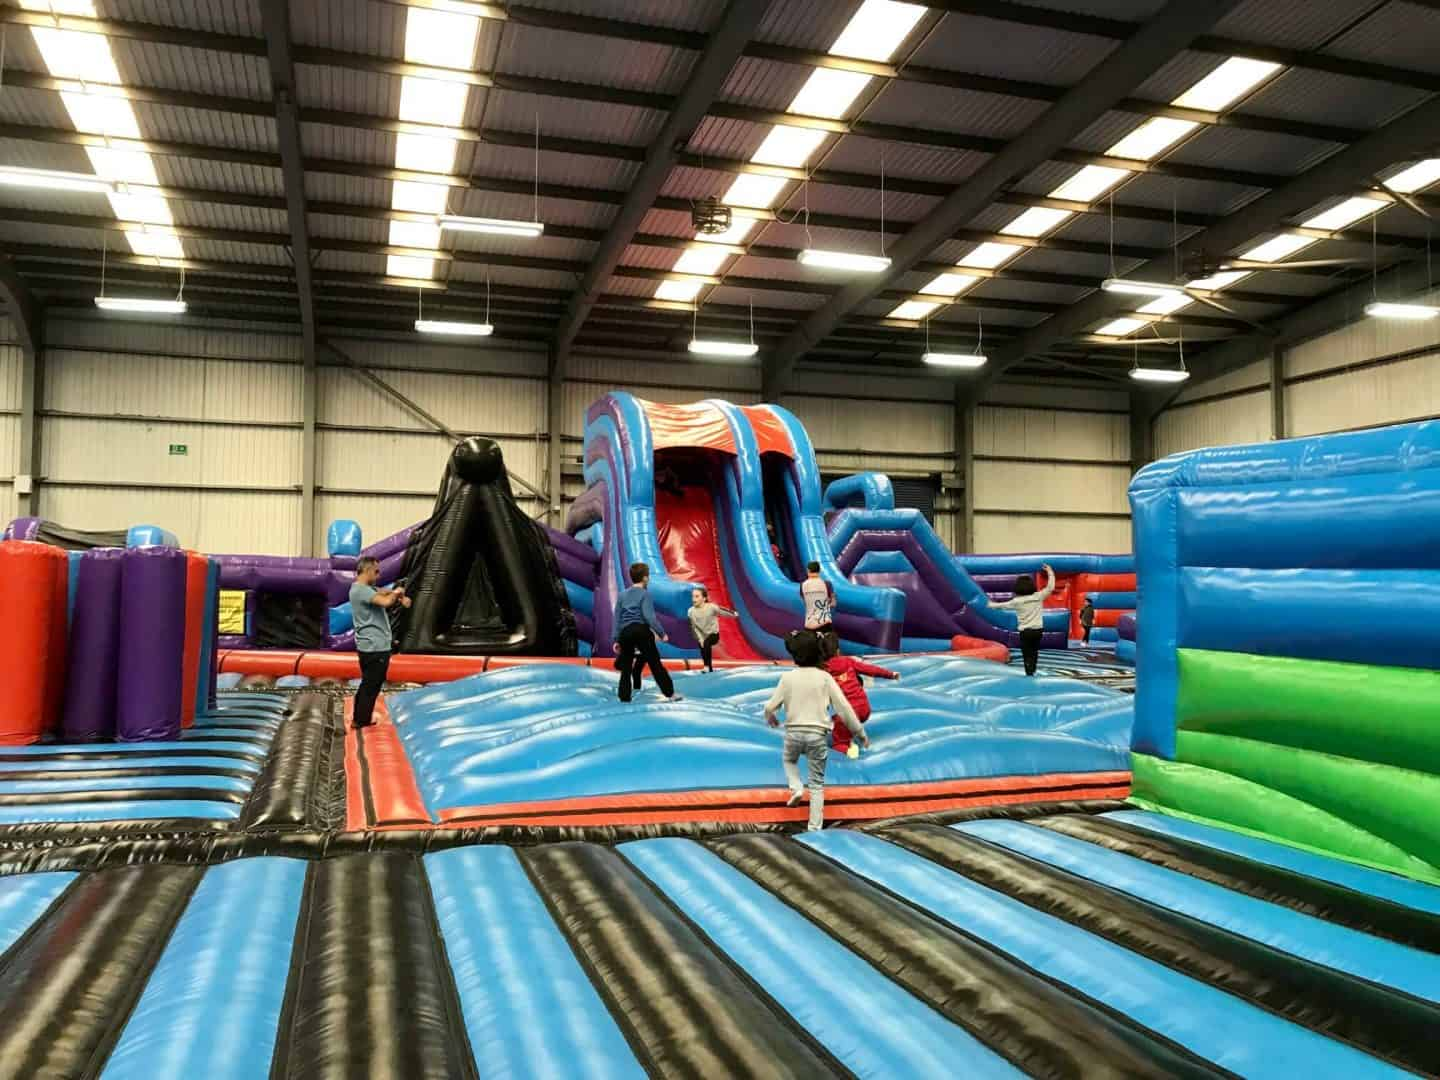 Inflatanation-adult area